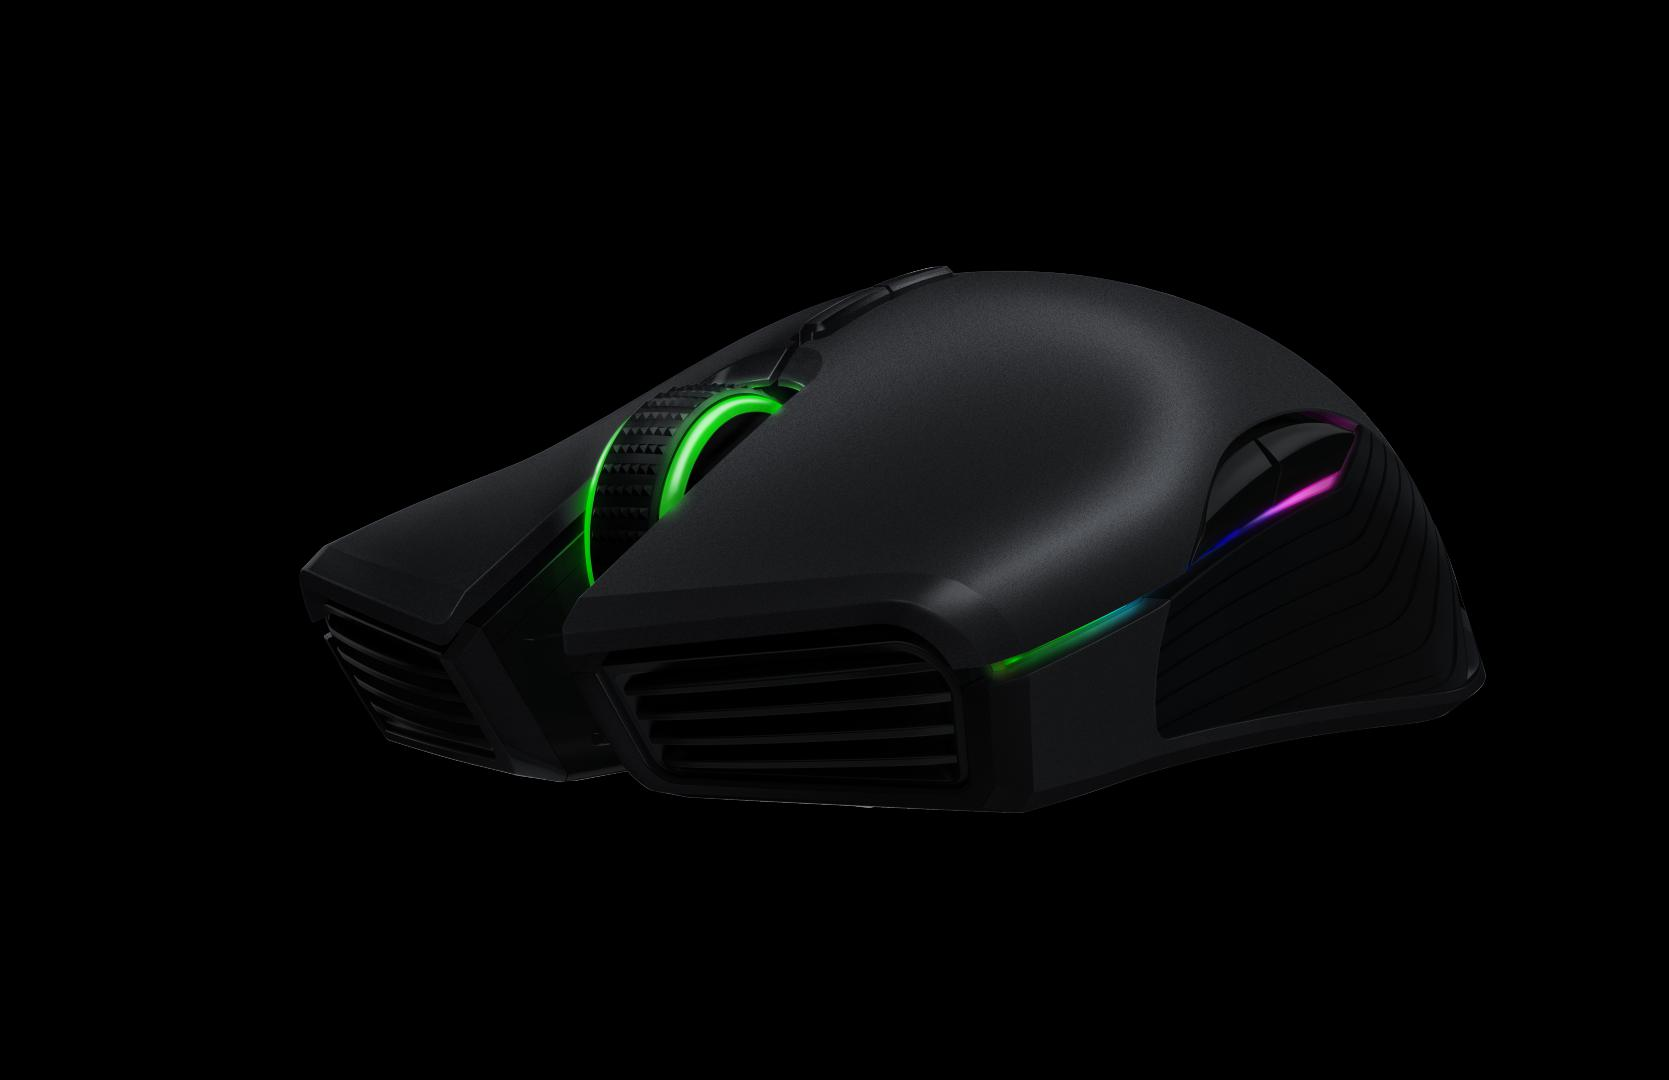 Razer Lancehead Wireless and Tournament Edition Gaming Mice